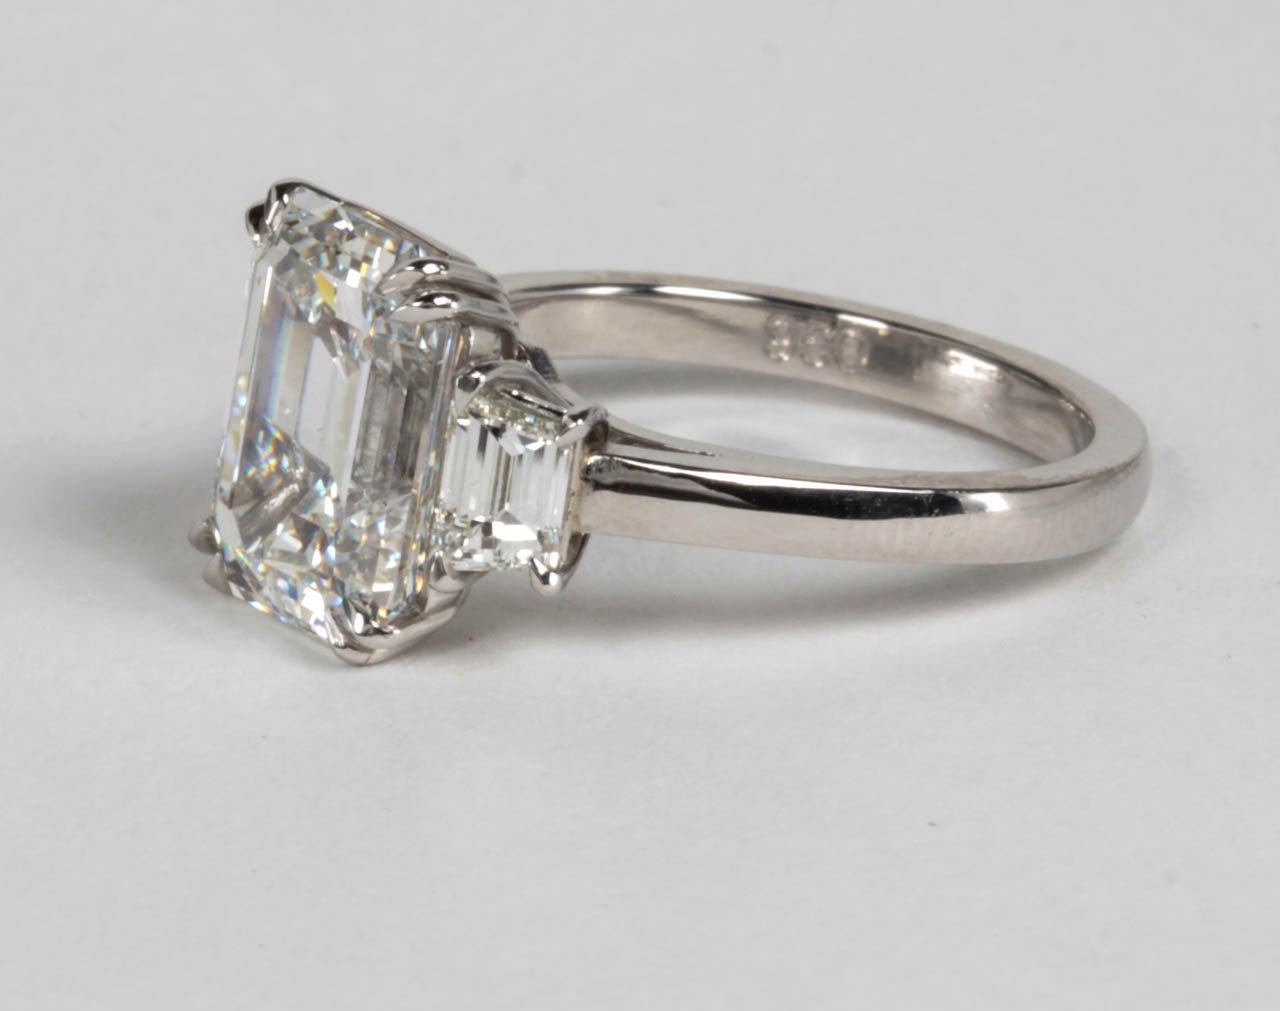 GIA Certified Emerald Cut F VS1 Diamond Platinum Ring For Sale 2